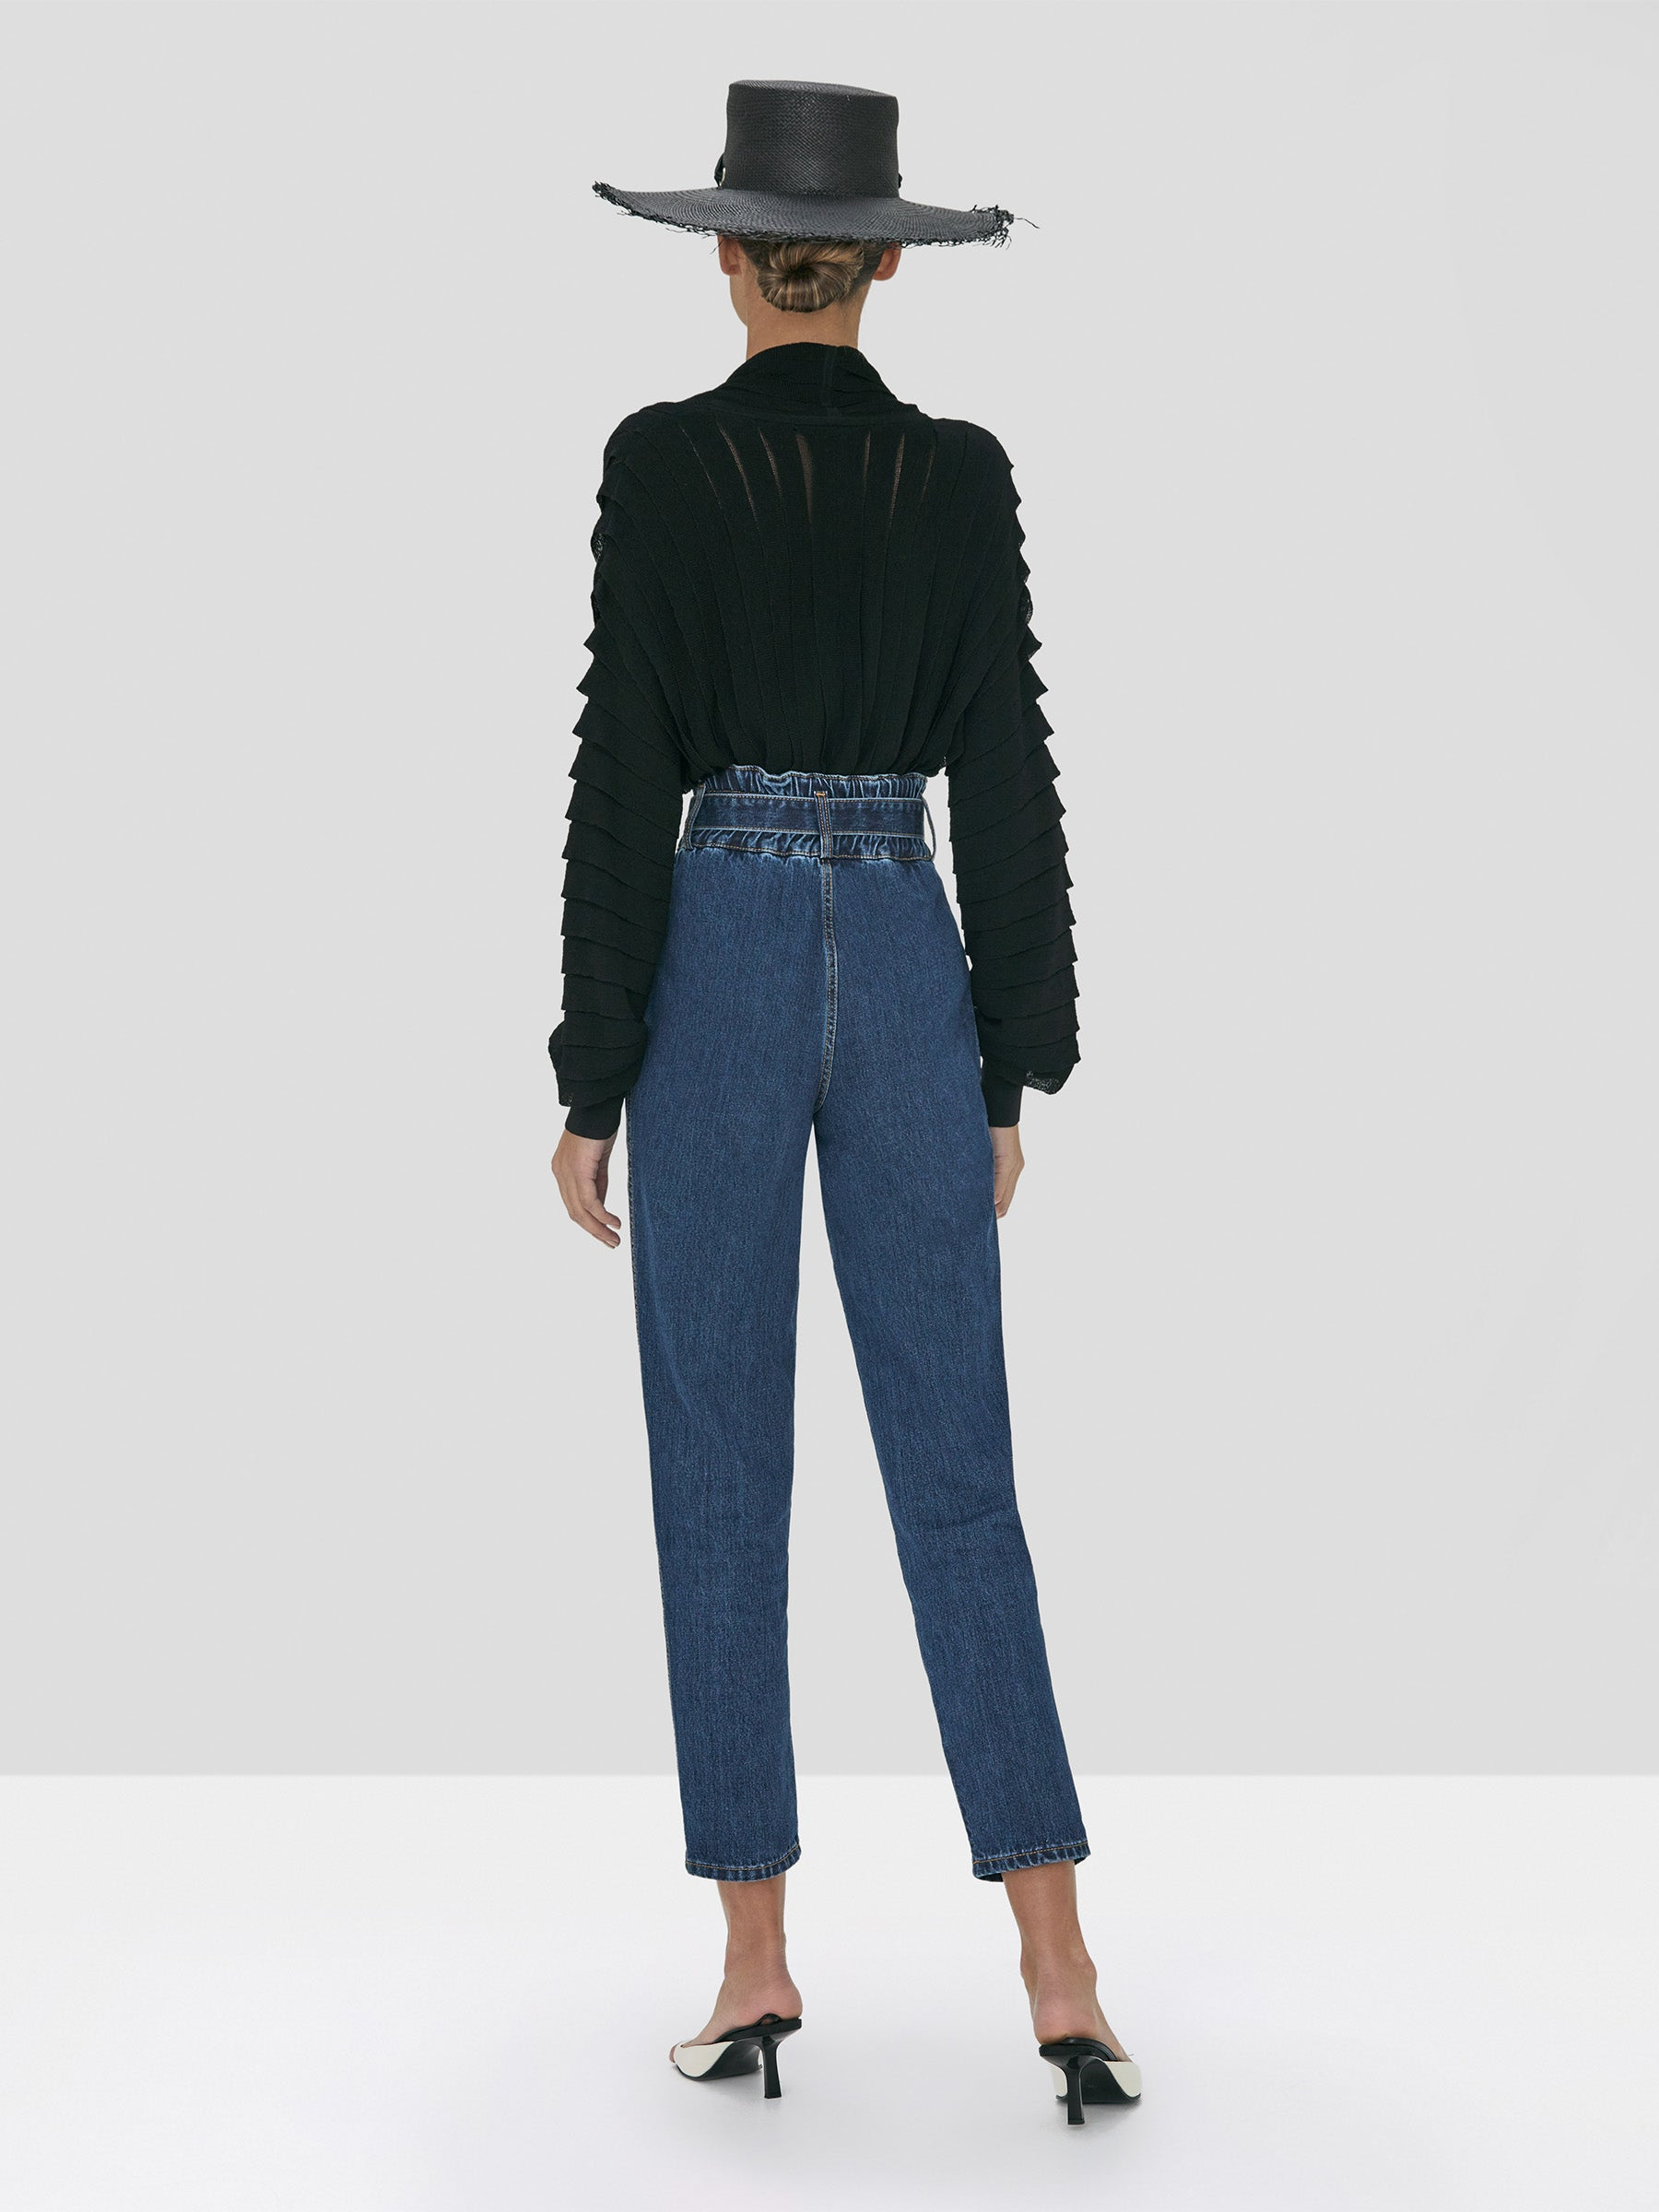 Alexis Oziel Top in Black and Stannis Denim Pant in Washed Denim from Spring Summer 2020 - Rear View